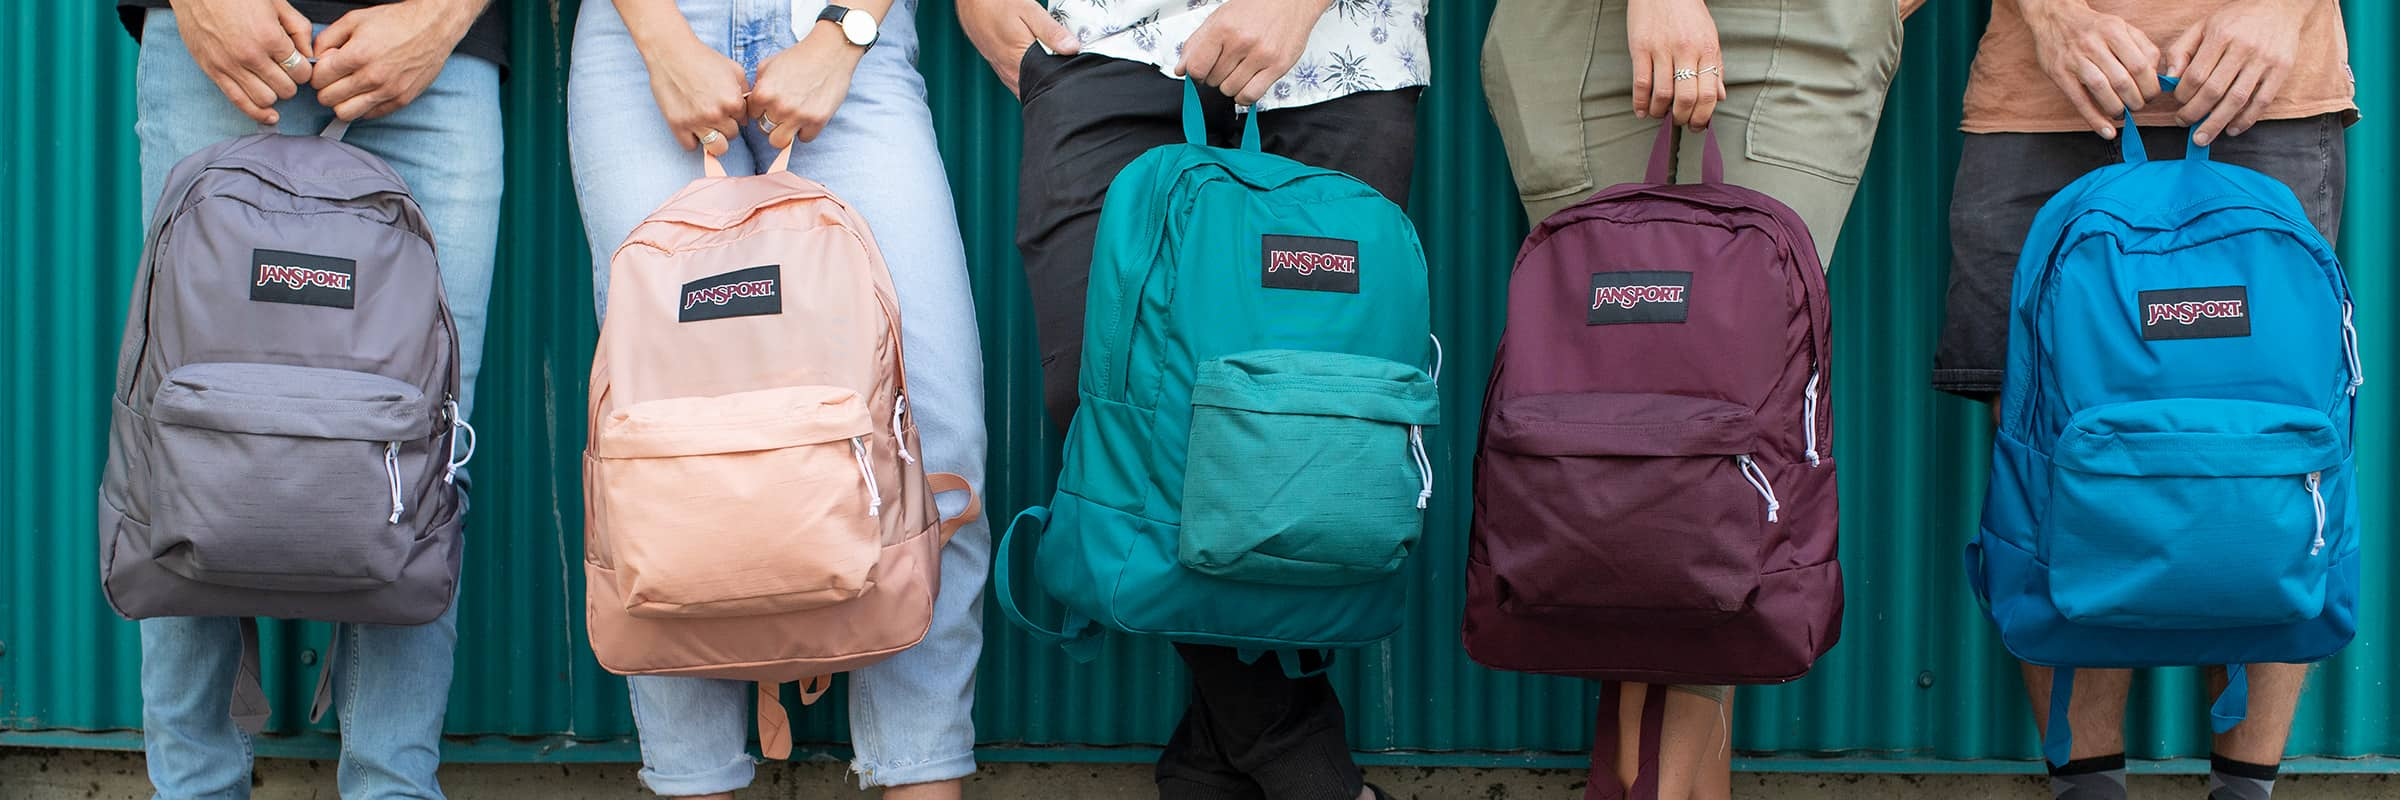 How To Choose The Right School Bag Or Backpack